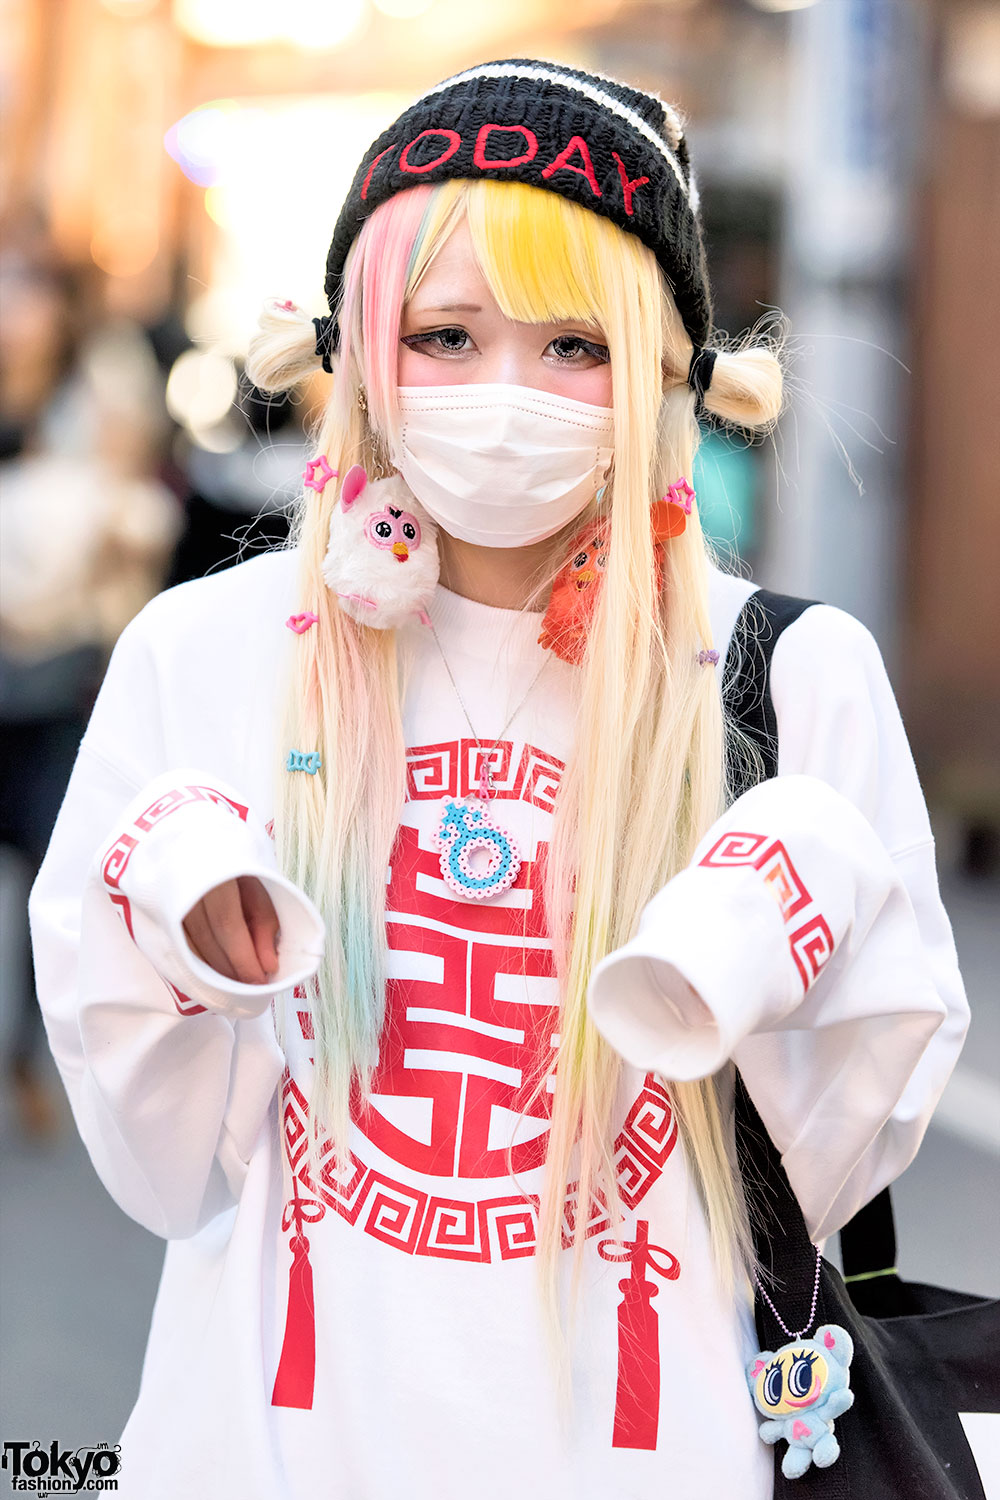 Harajuku Girls W Twintails Oversized Sweatshirts Loose